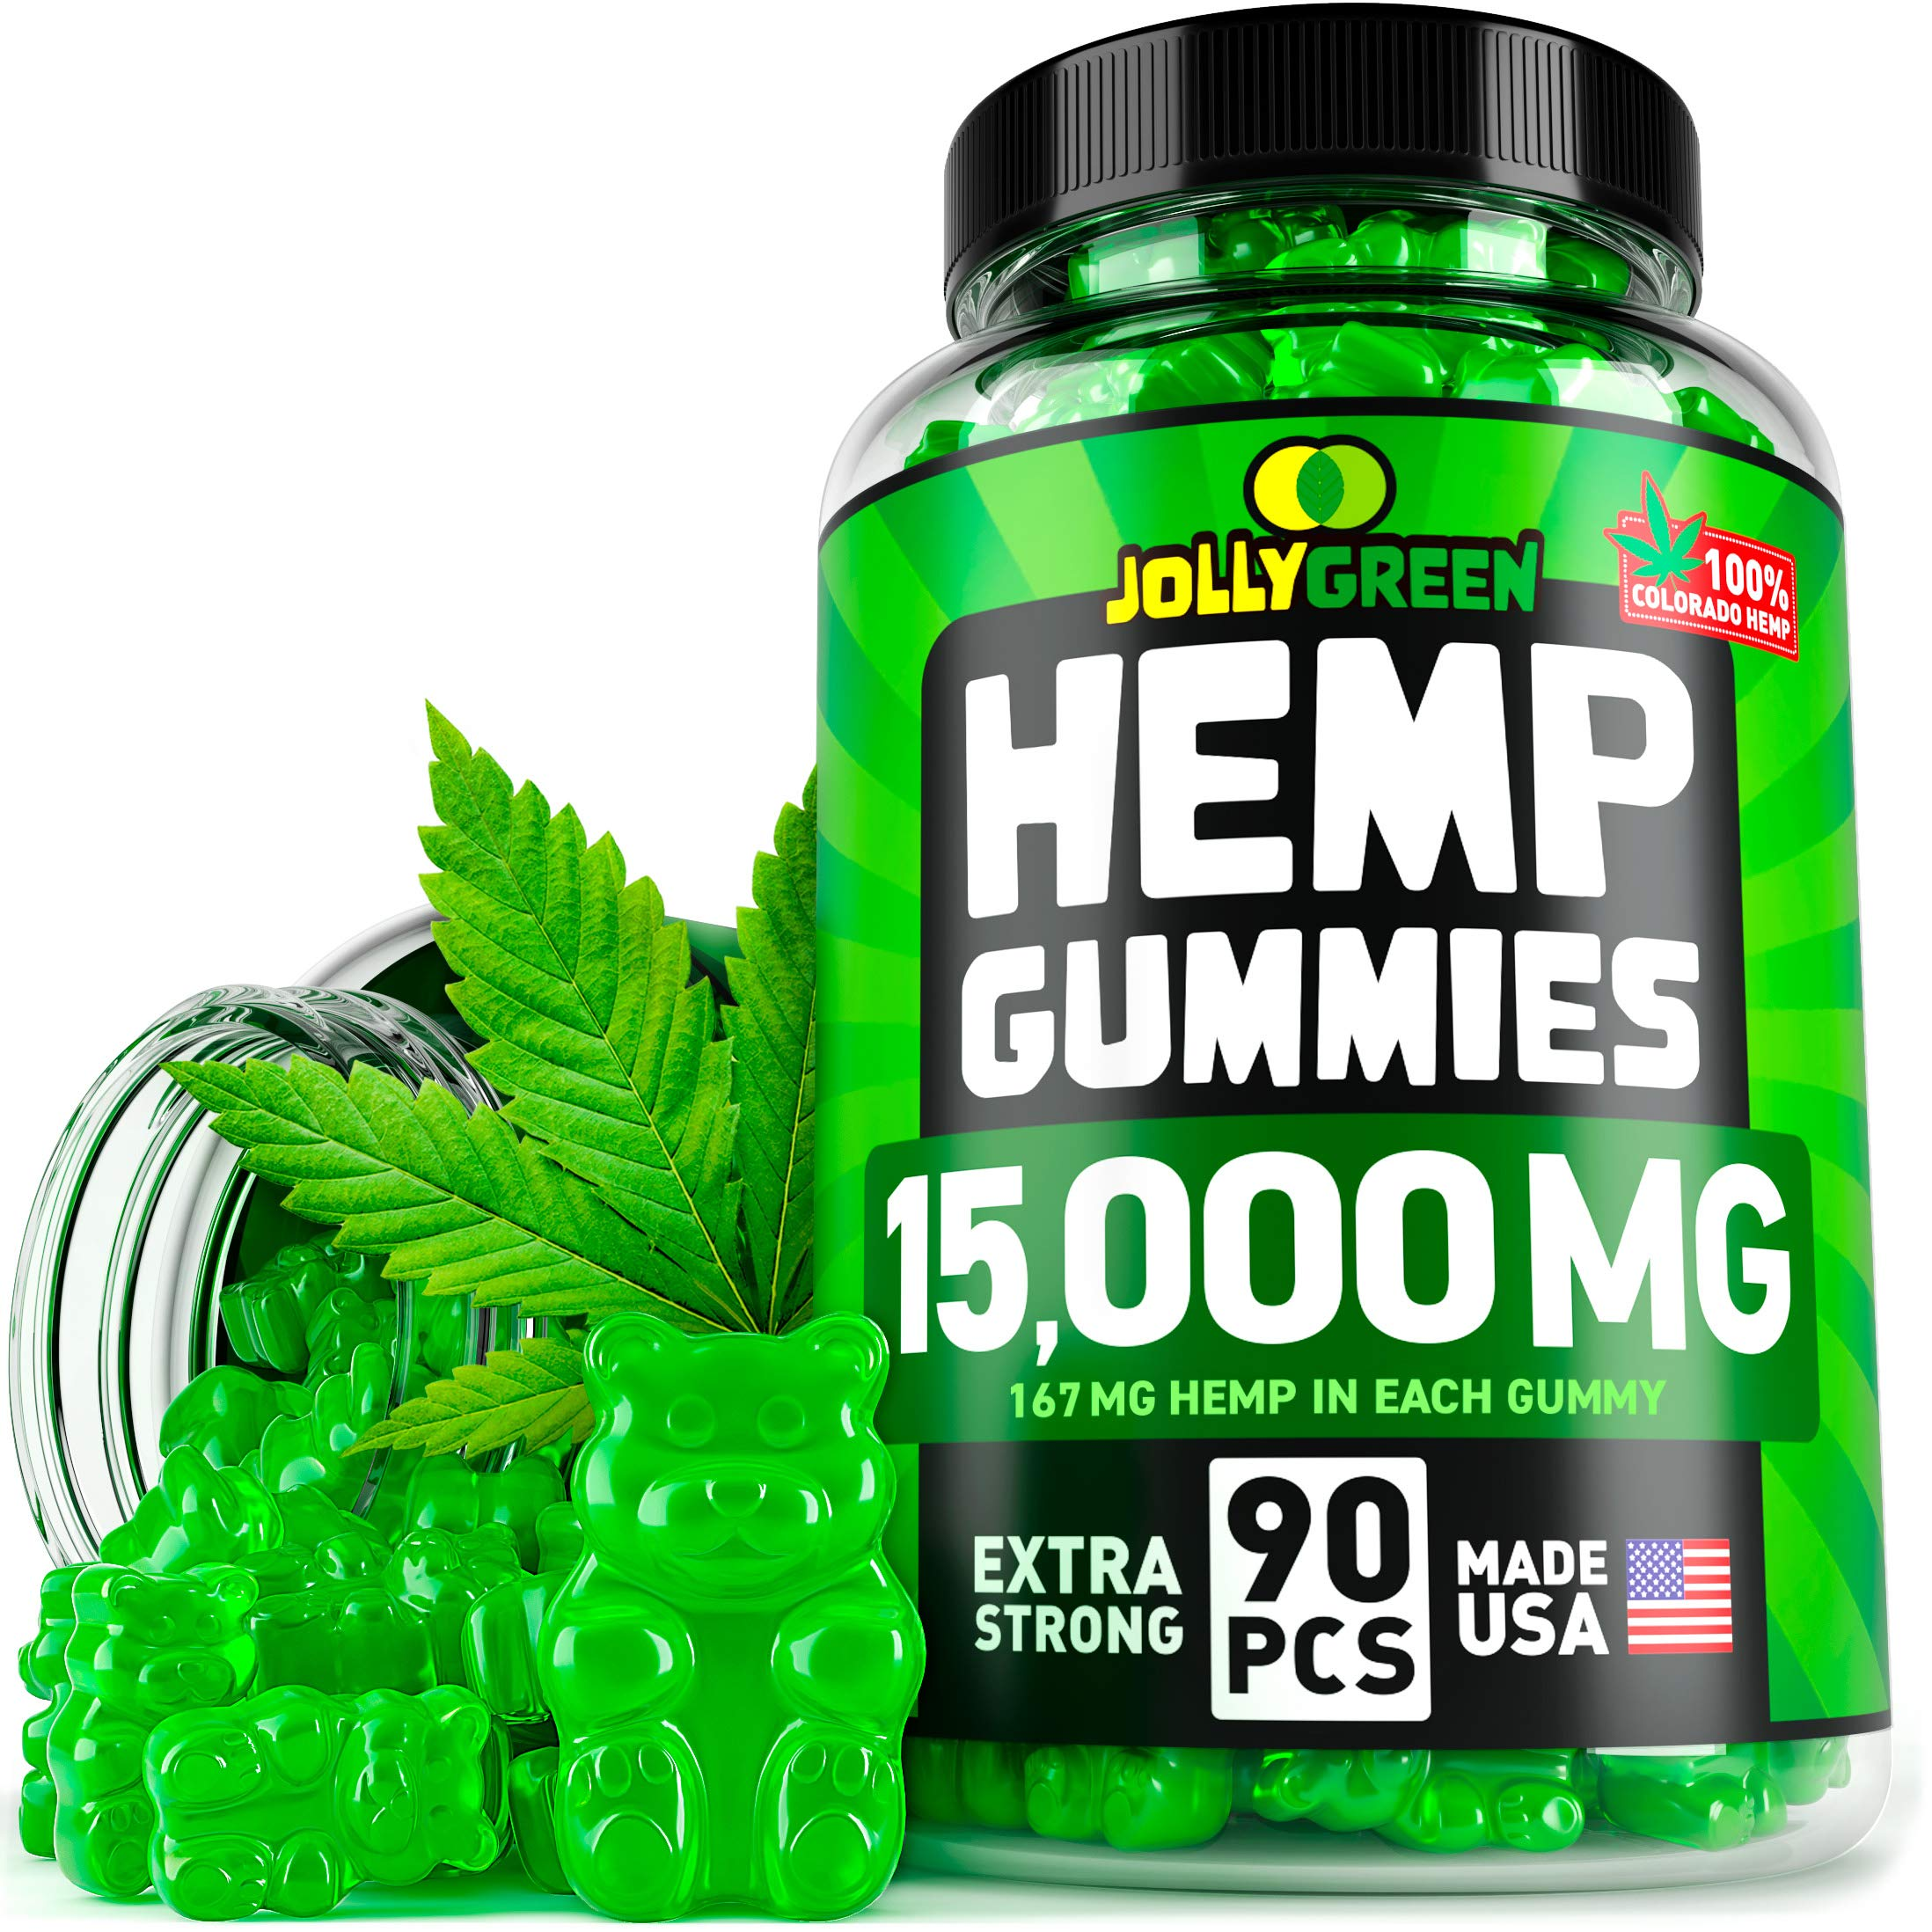 JOLLYGREEN Hemp Gummies - 15000MG in 90 PCS - Effective Anxiety & Stress Relief - Made in USA - Natural Immune Gummies - Tasty & Relaxing - Rich in Omega 3-6-9 - Great Mood Boost & Insomnia Relief by JollyGreen Inc.